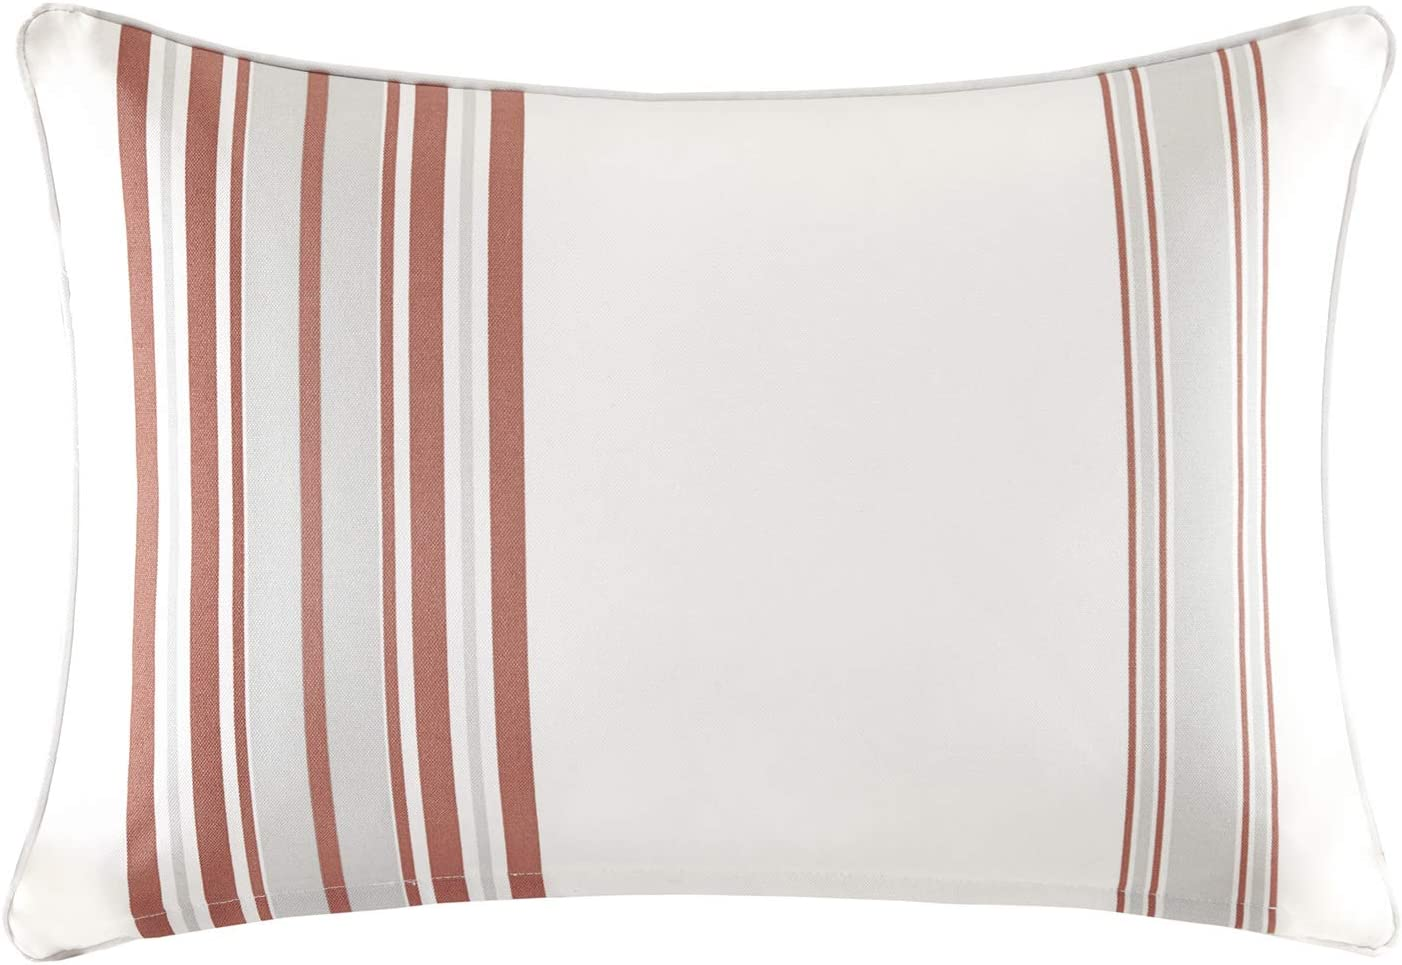 Madison Park Newport Pillow, 14x20, Coral/White